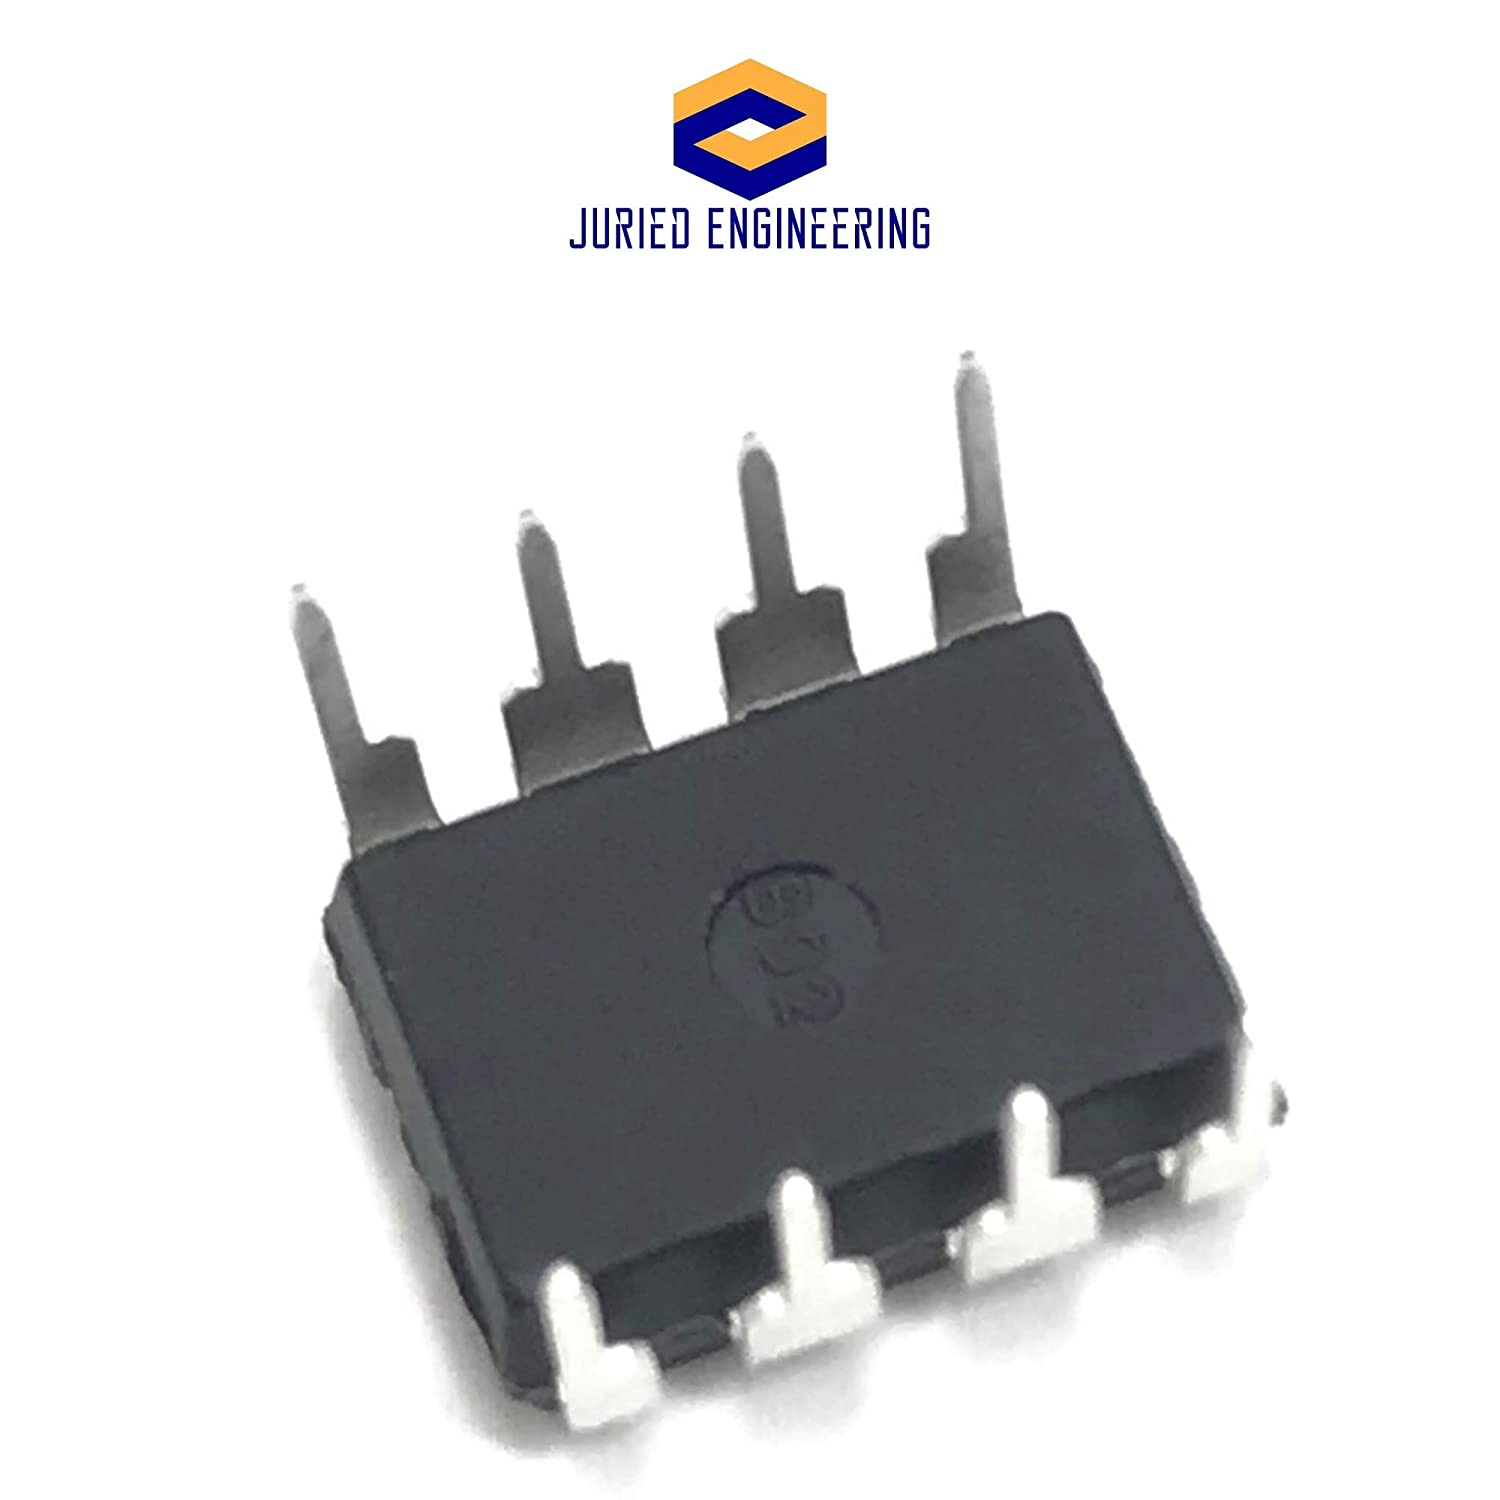 Pack of 15 Texas Instruments LM393P LM393 Dual Differential Comparators DIP-8 Breadboard-Friendly